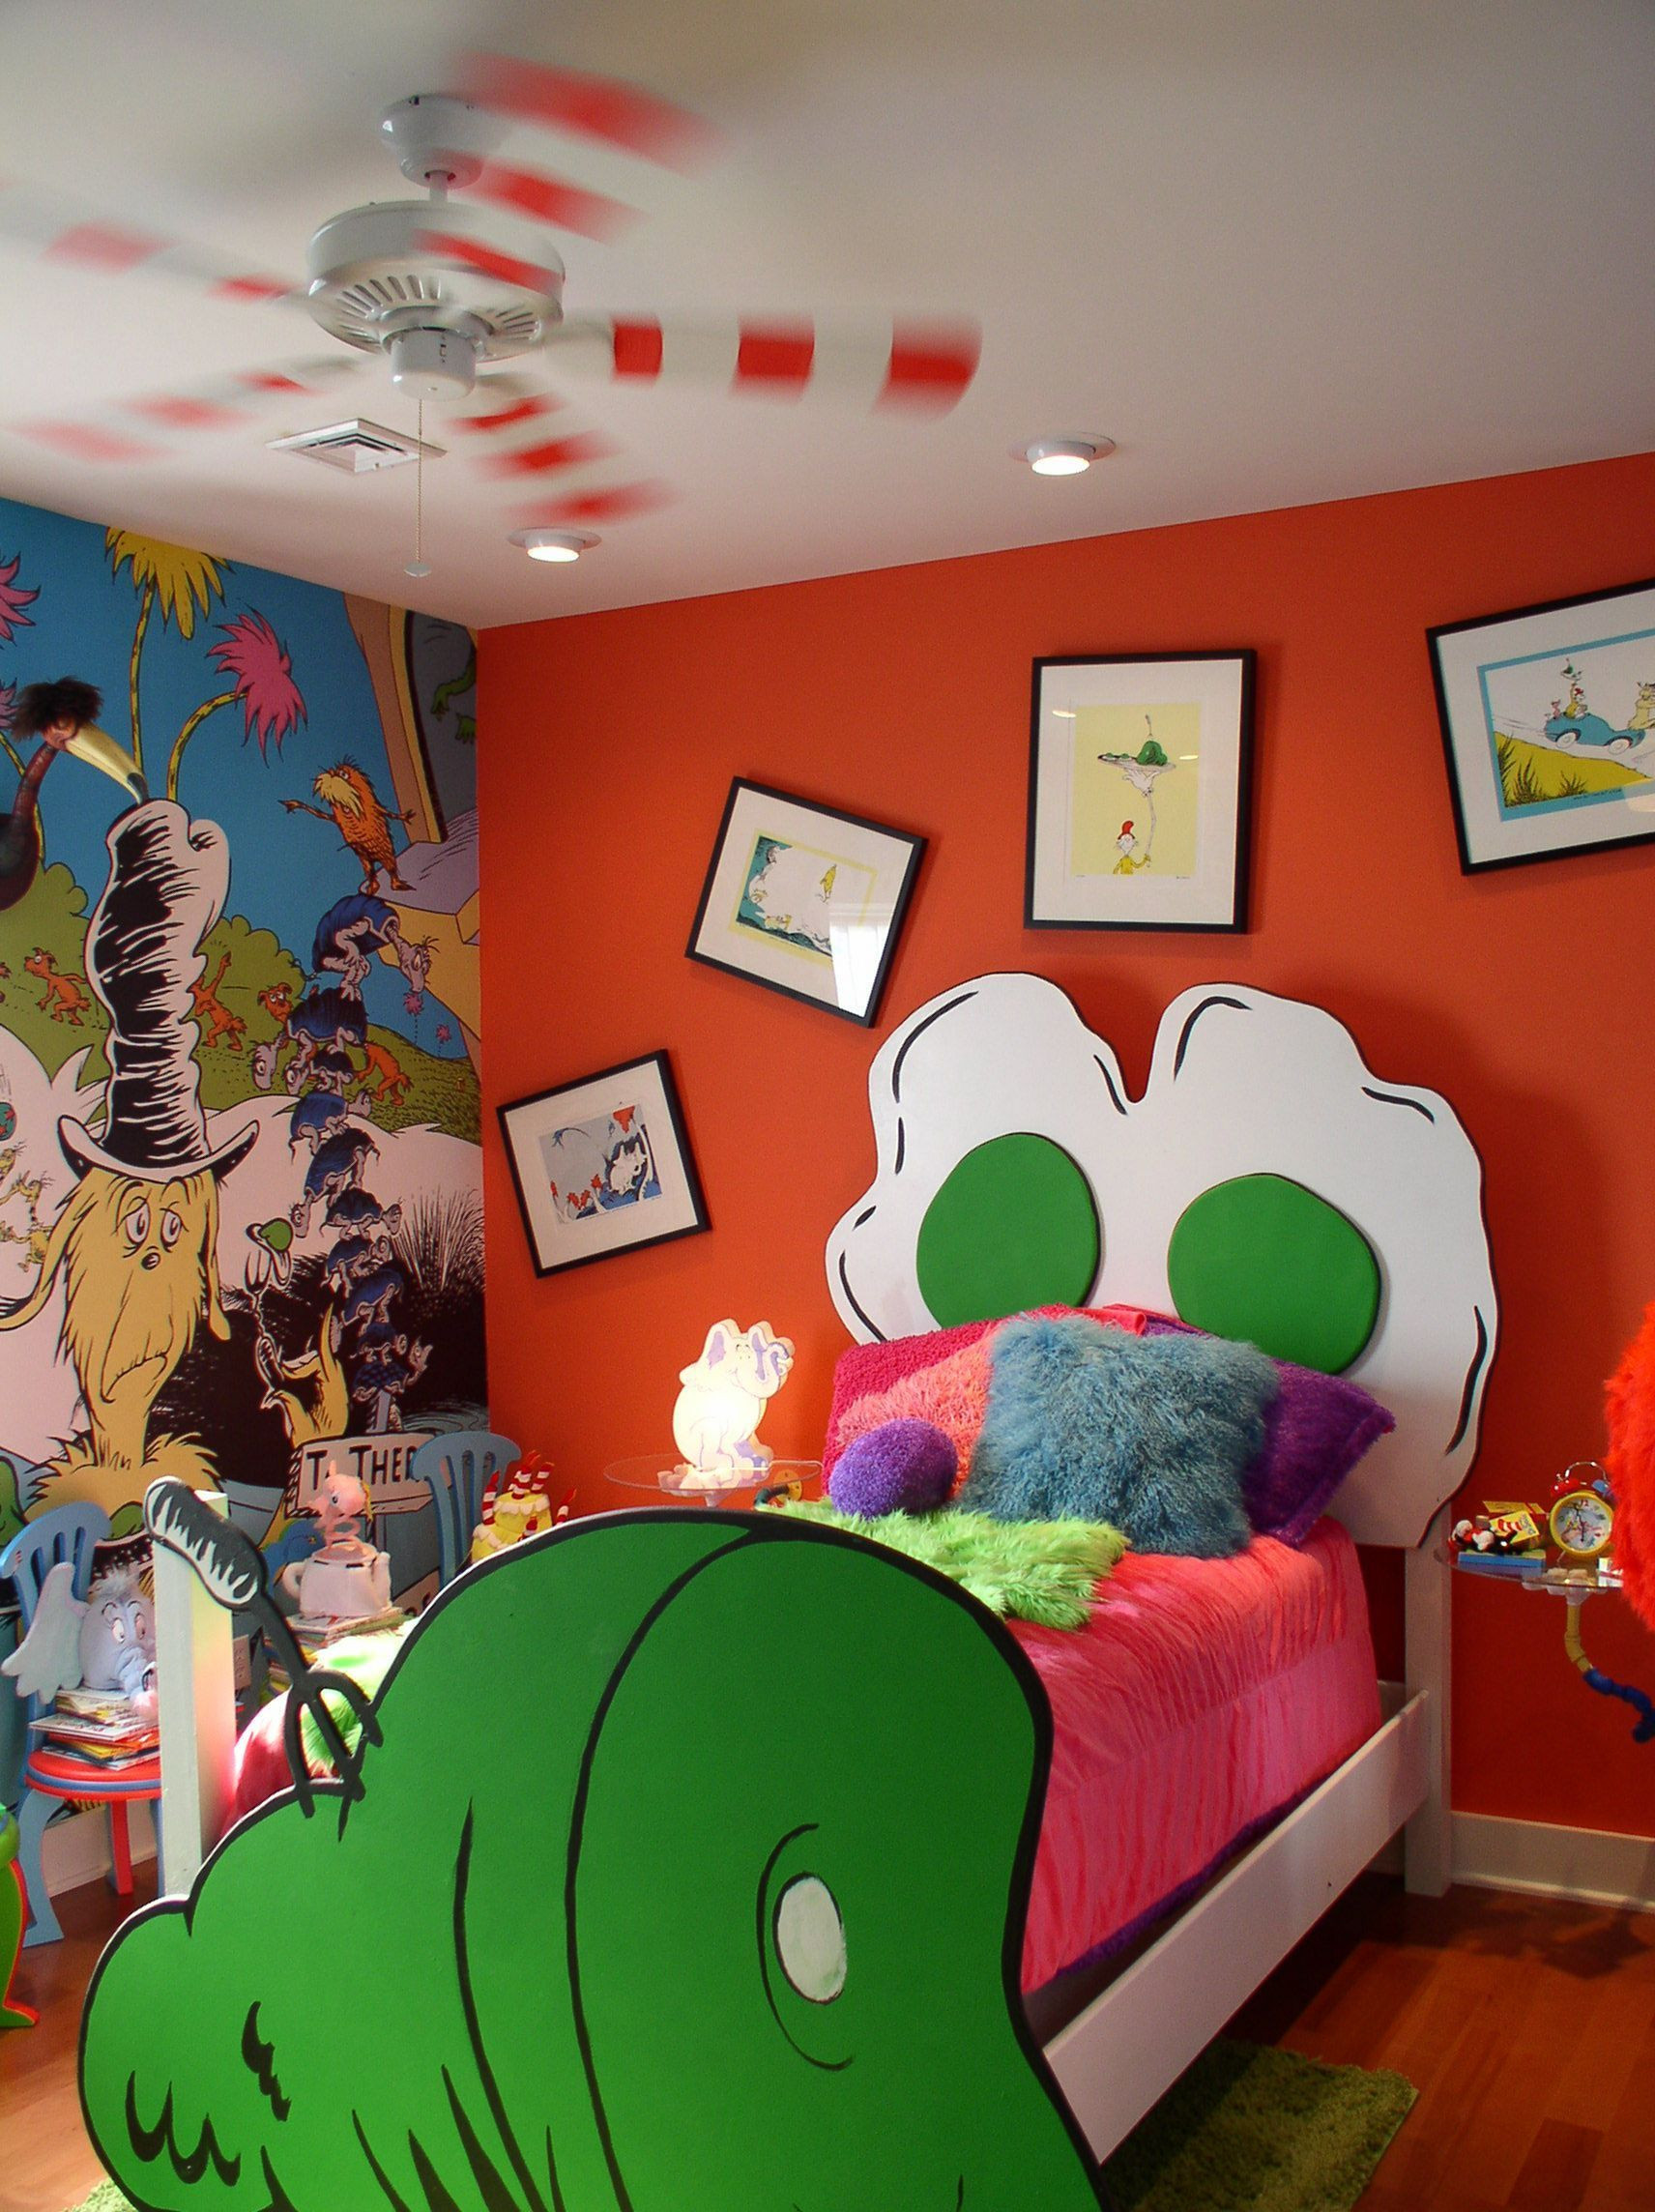 Dr Seuss Baby Room Decor  10 Awesome Cartoon Bedroom Decorating Ideas For Your Child